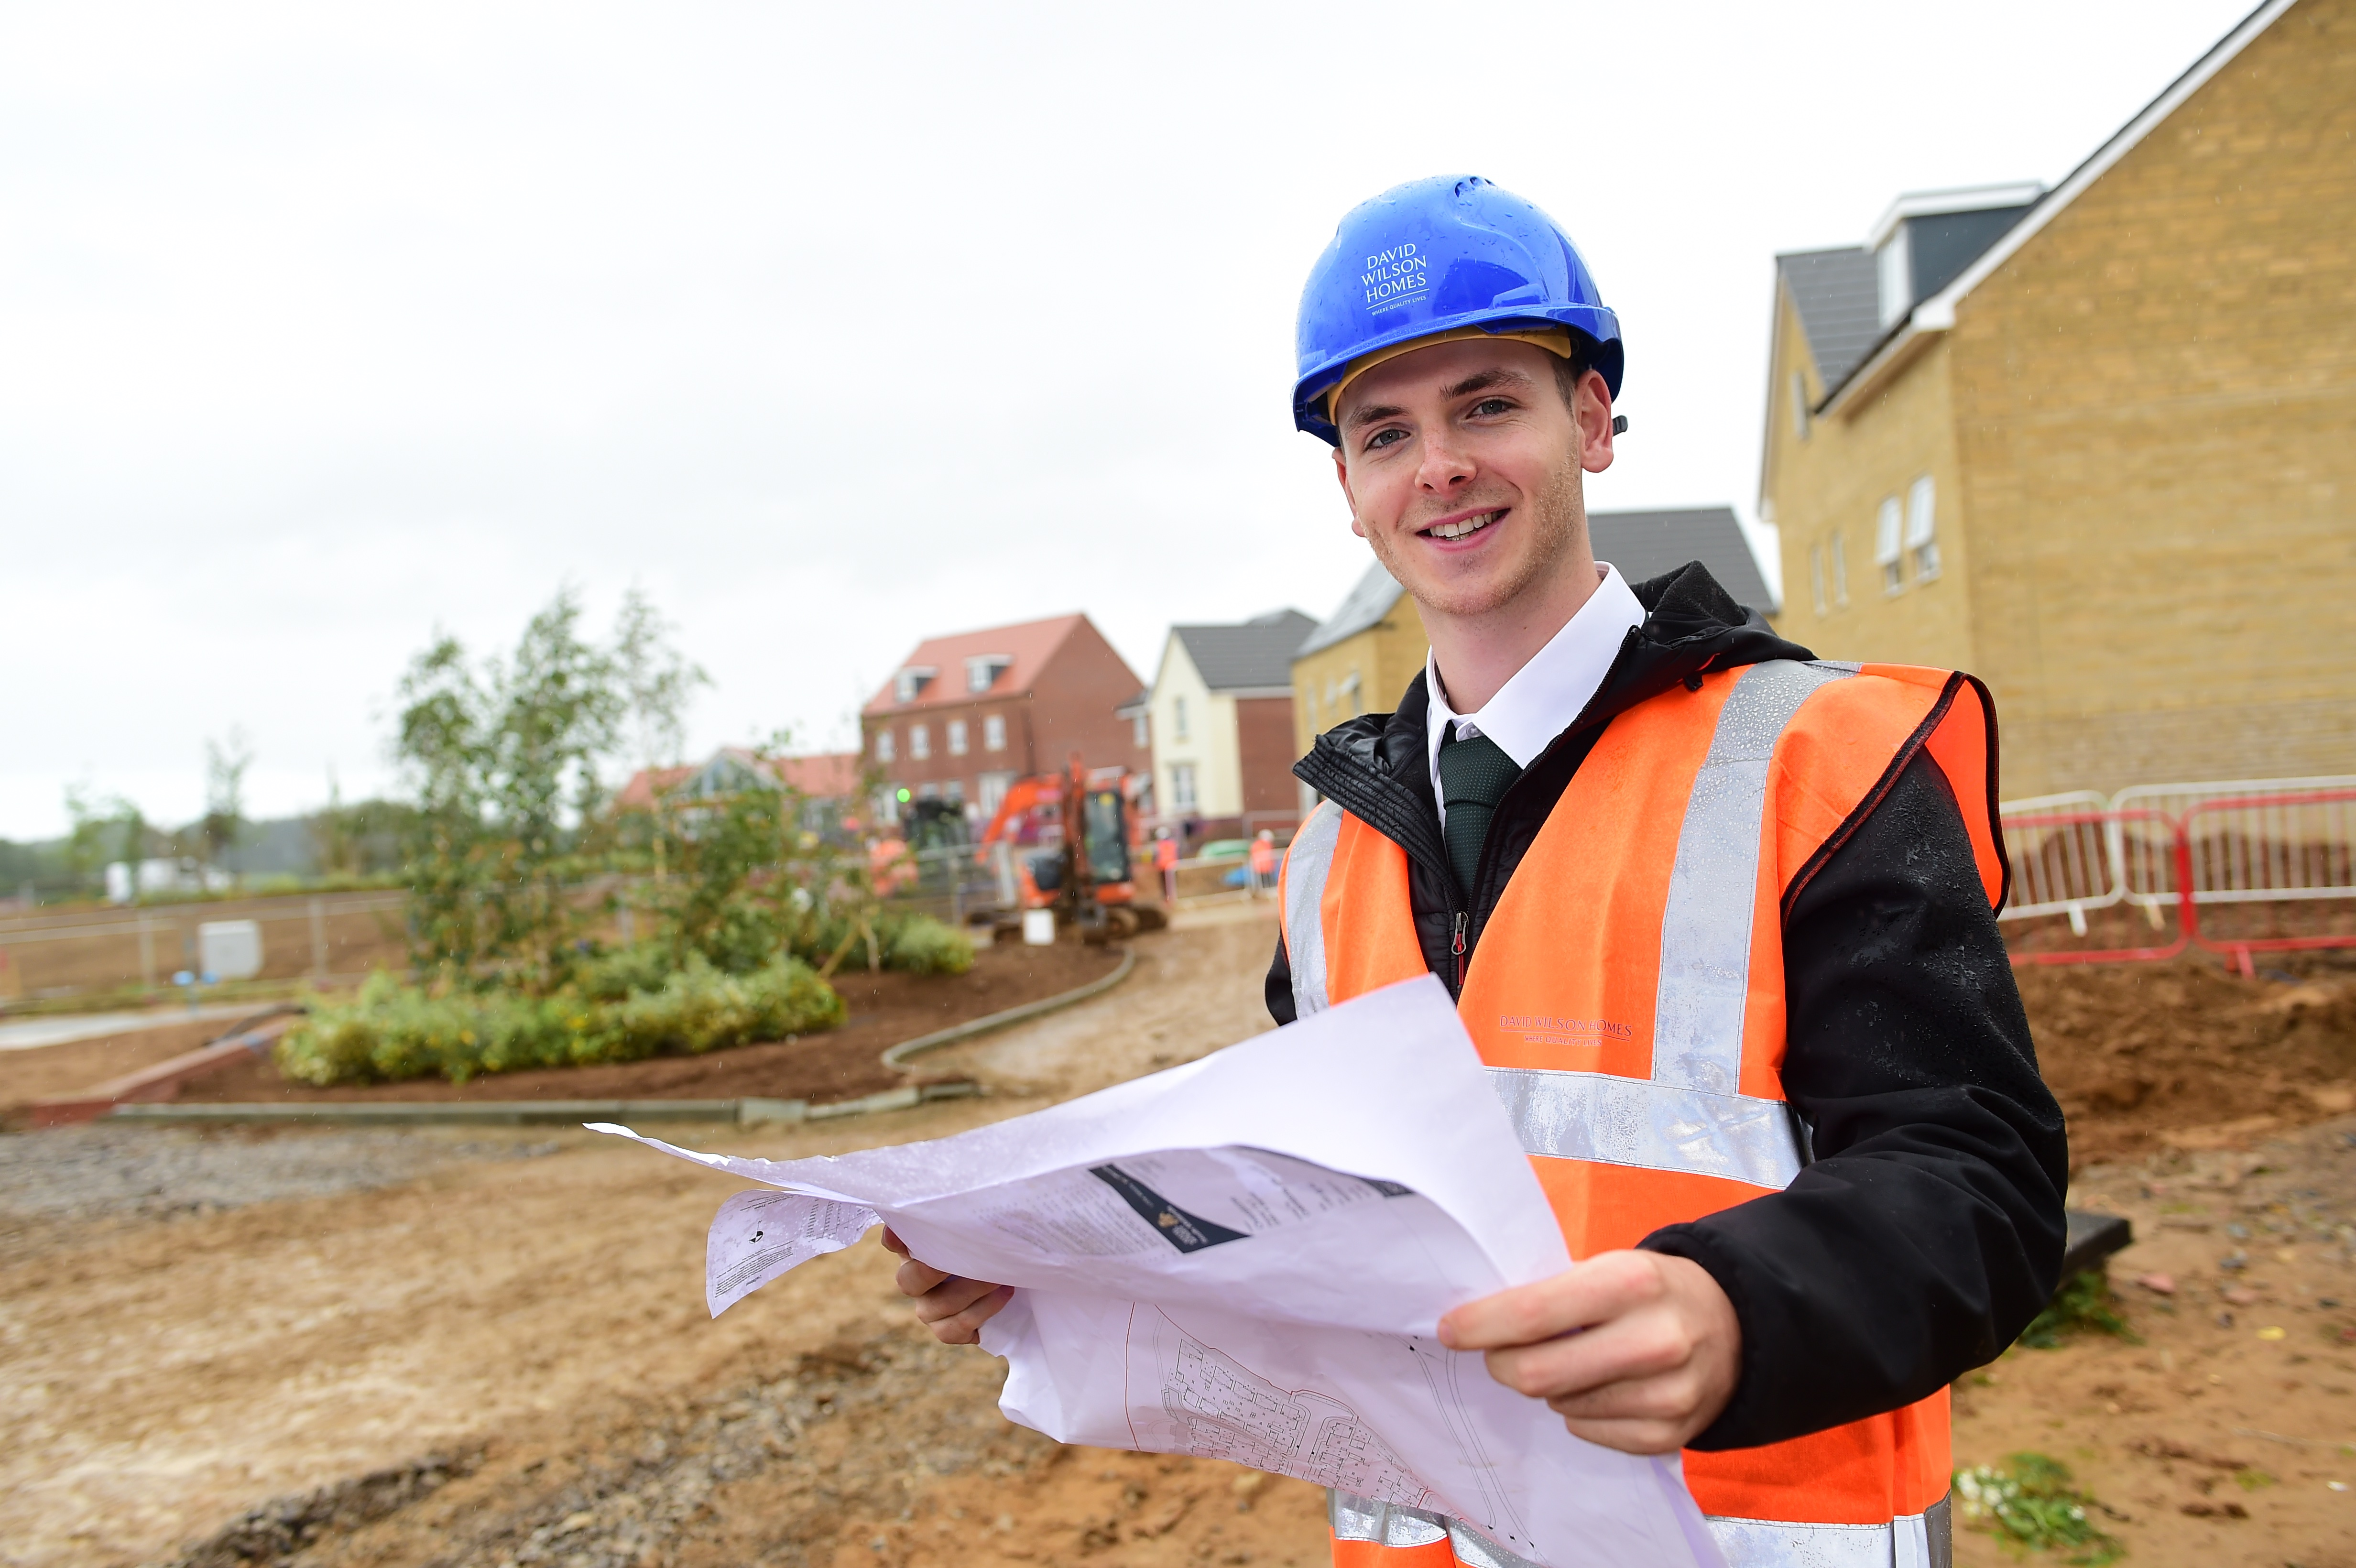 Leading developer welcomes new commercial graduate through its ASPIRE Programme